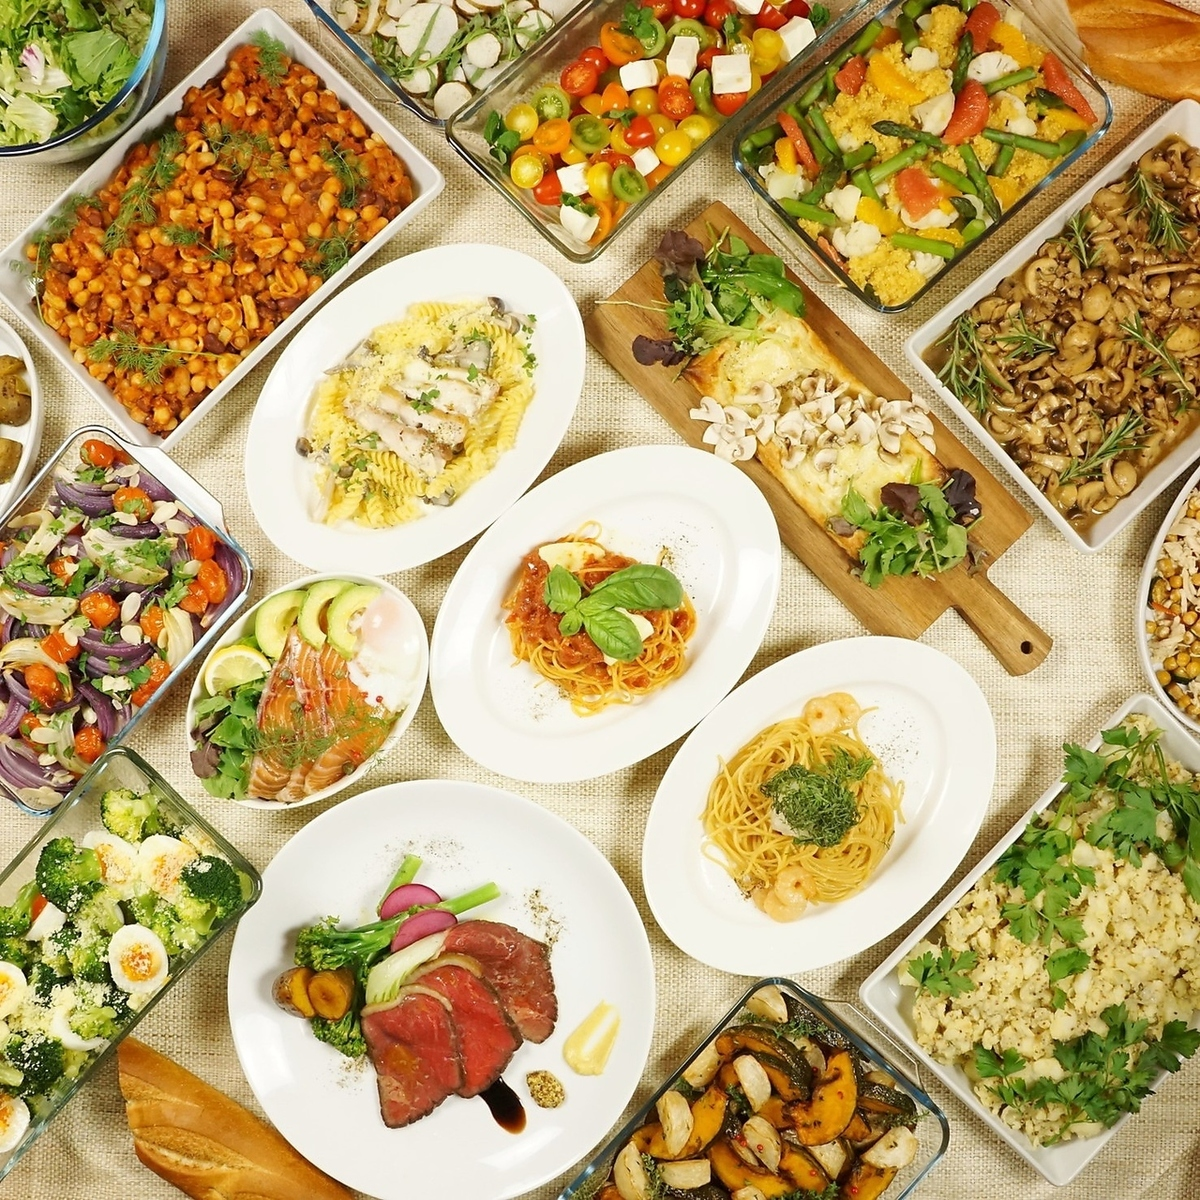 All you can eat salad bar and prepared dish buffet